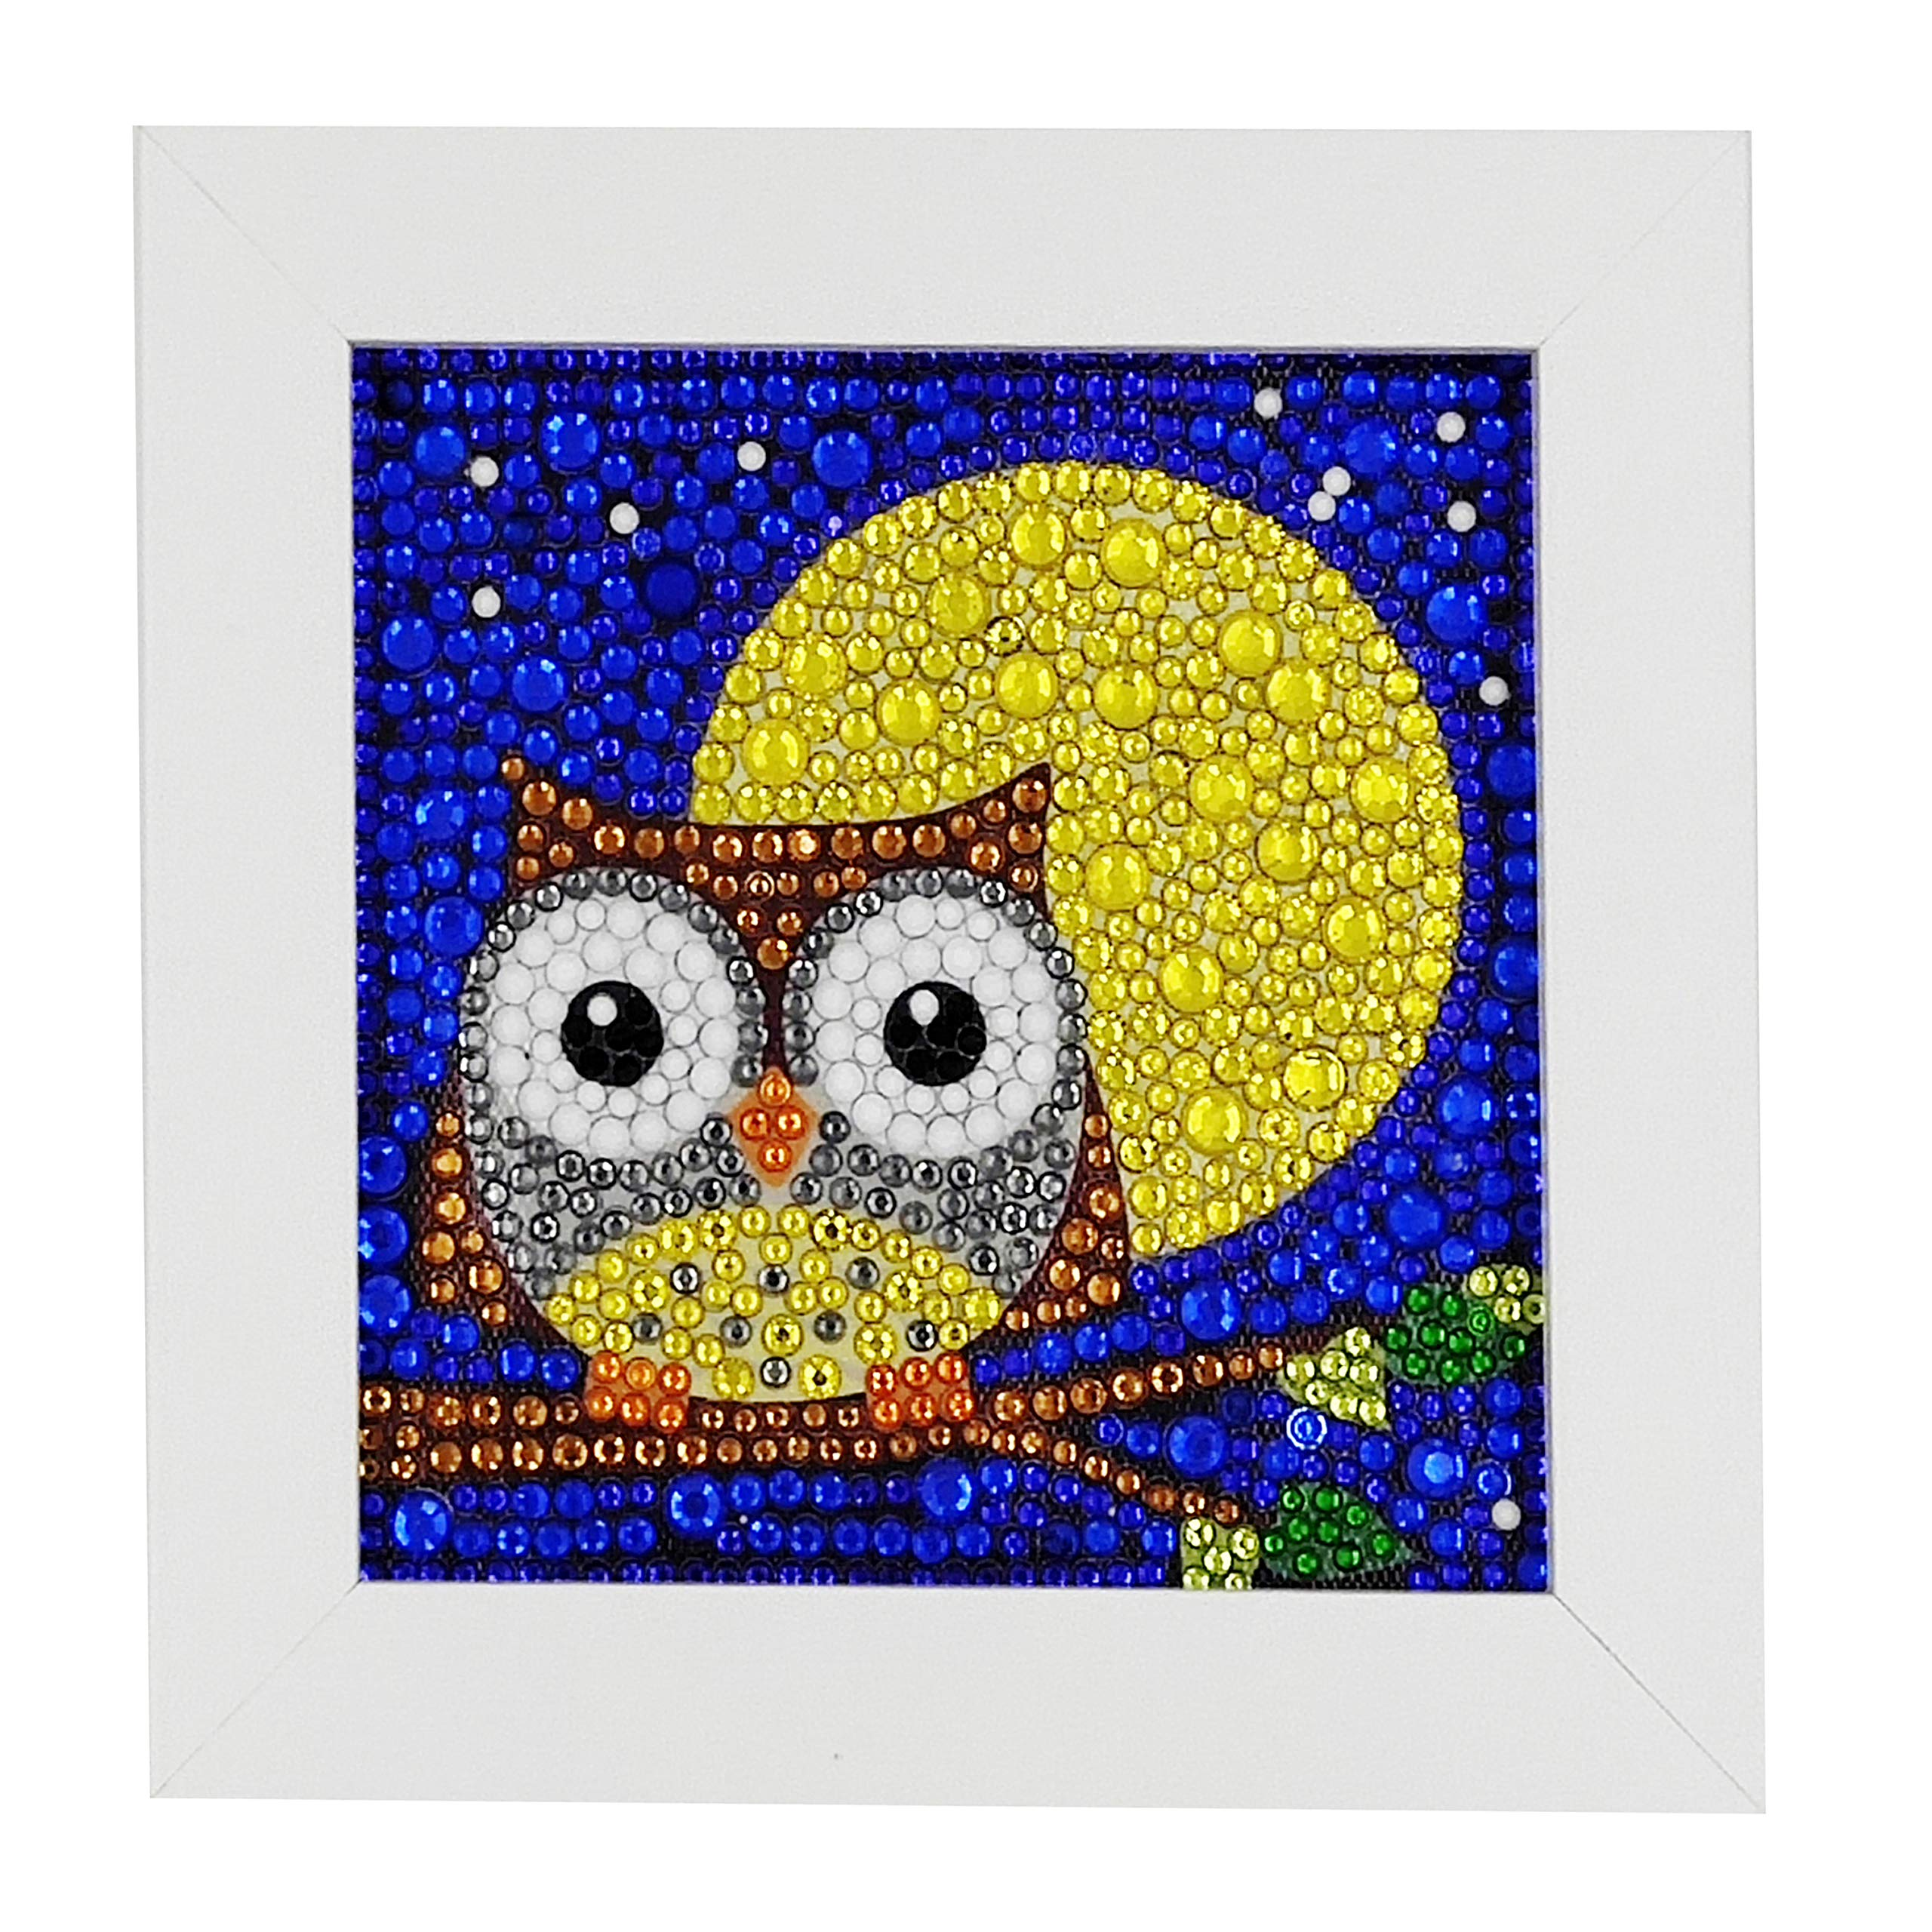 ParNarZar Easy 3D Diamond Painting Kit for Kids, Full Drill Painting by Number Kits with Wooden Frame Crafts Supply Set Rhinestone Mosaic Making - Owl and Yellow Moon 6x6inches by ParNarZar